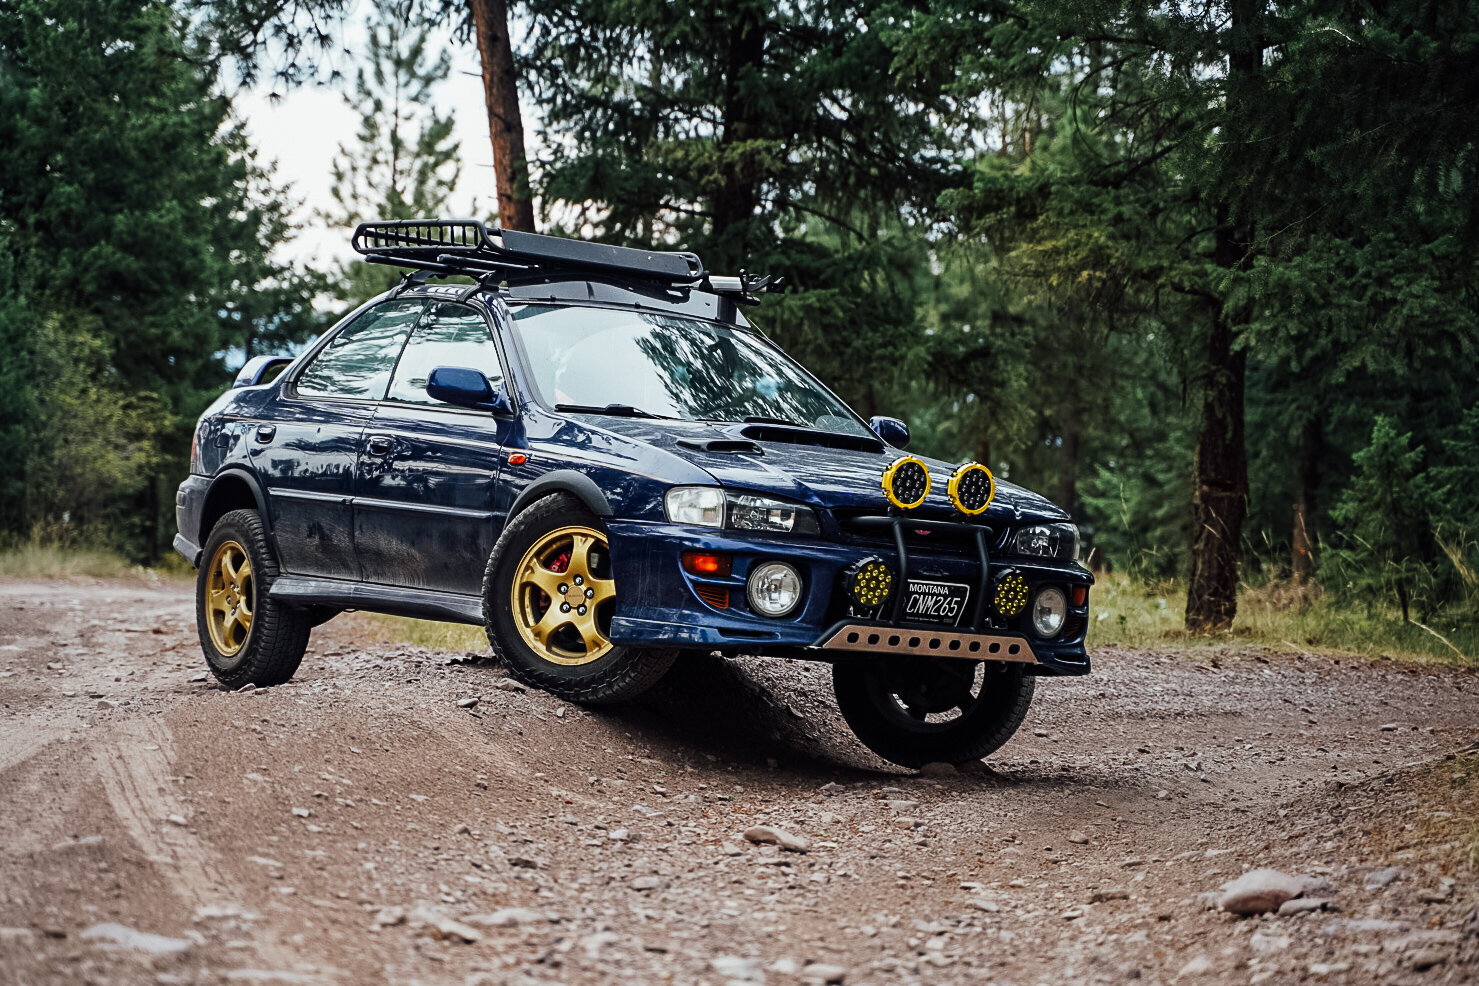 Subaru Impreza 2 5rs Off Road Build Lifted Gc6 Wanderlust Not Less Adventure Photography Nature Stickers